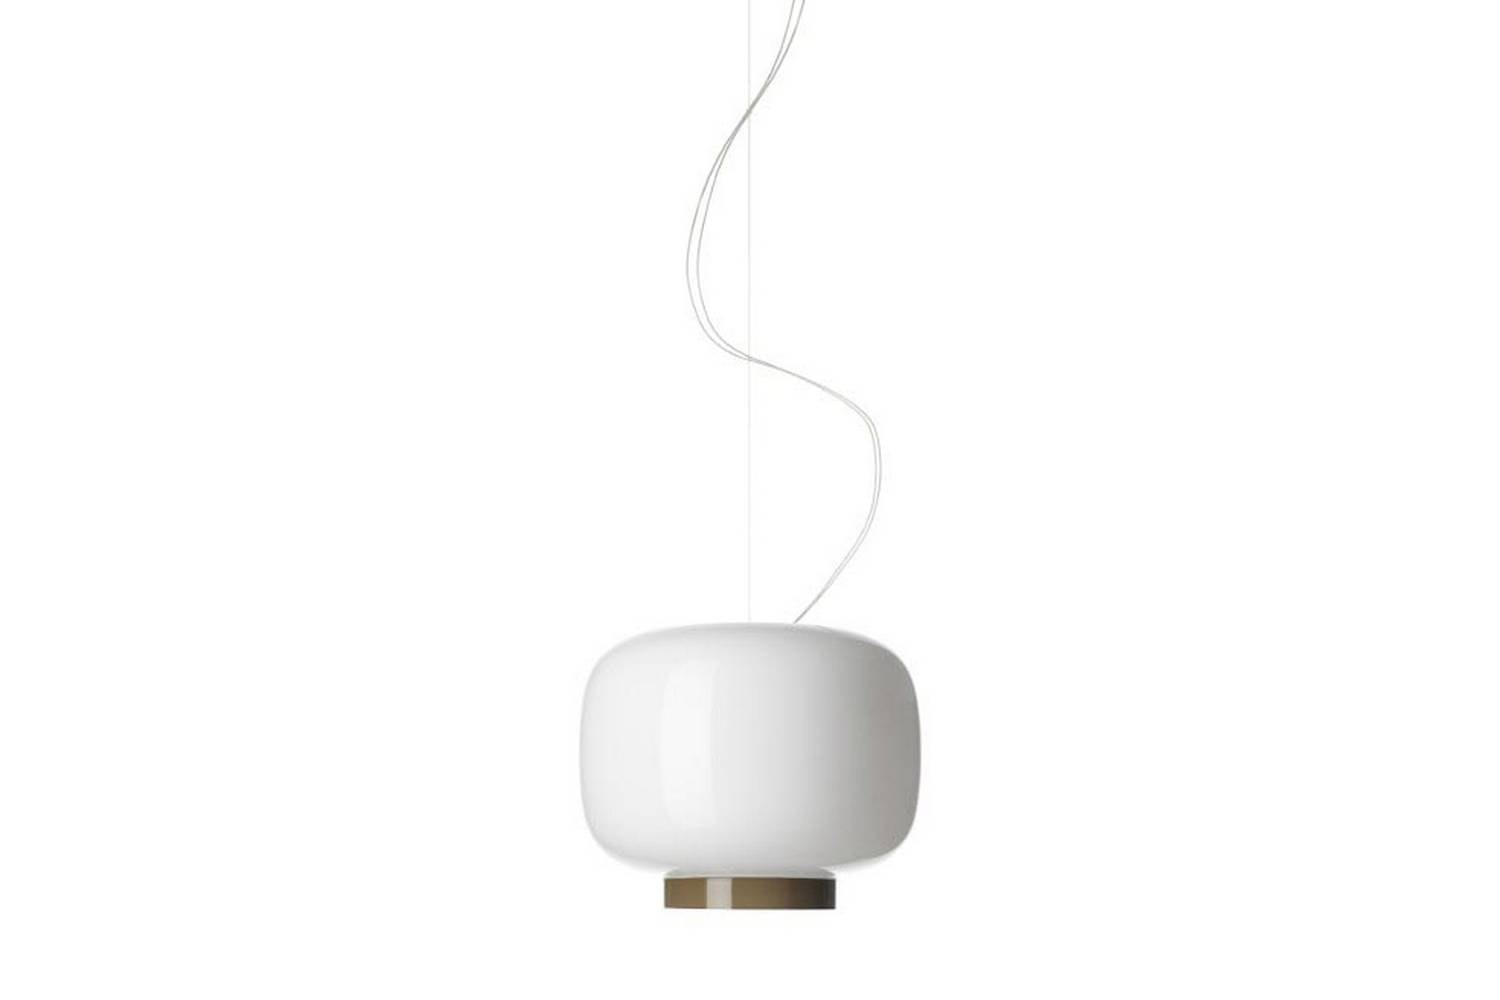 Chouchin Reverse 3 Suspension Lamp by Ionna Vautrin for Foscarini